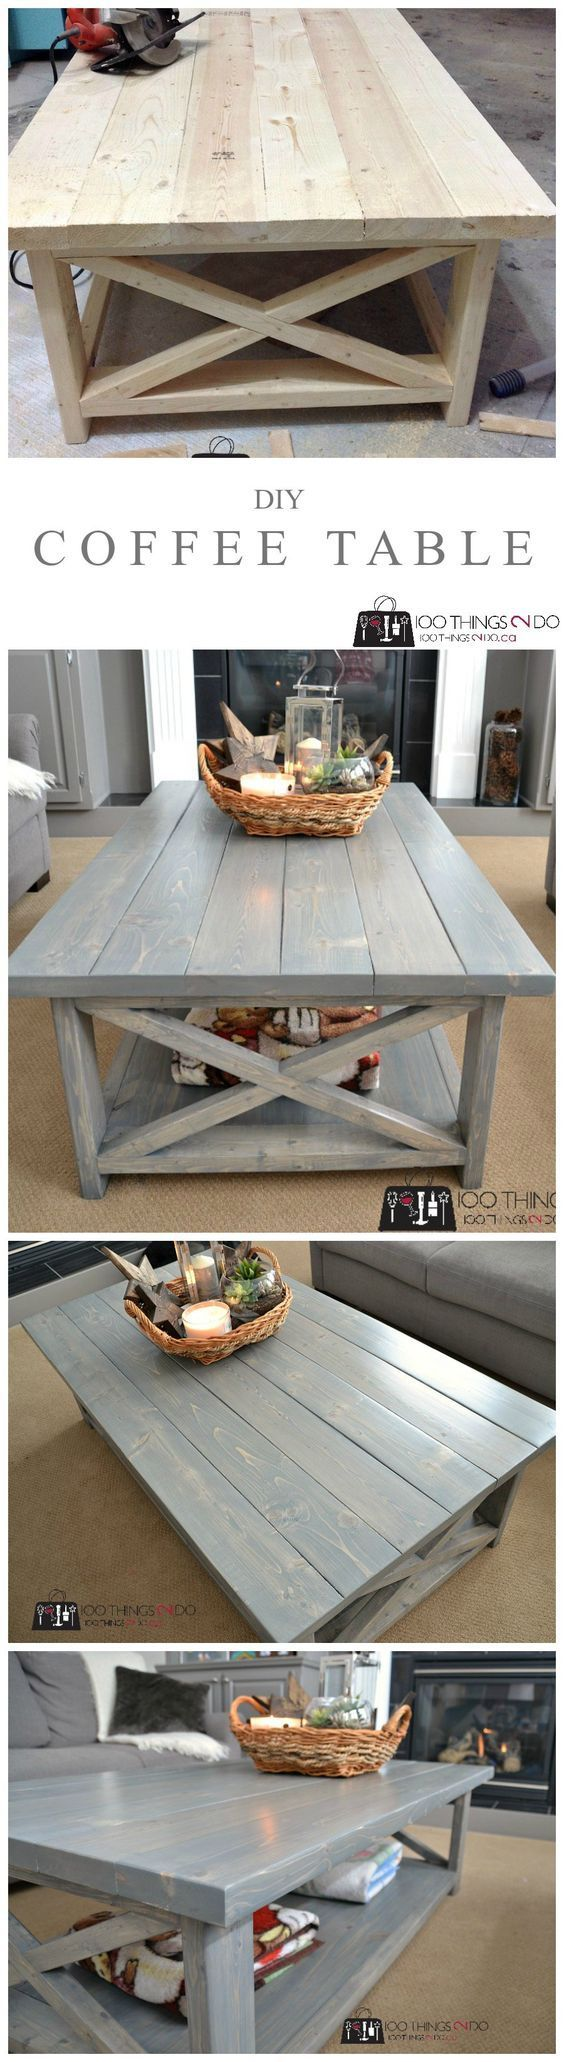 Best 25 coffee table plans ideas on pinterest diy coffee table diy coffee table rustic x geotapseo Image collections